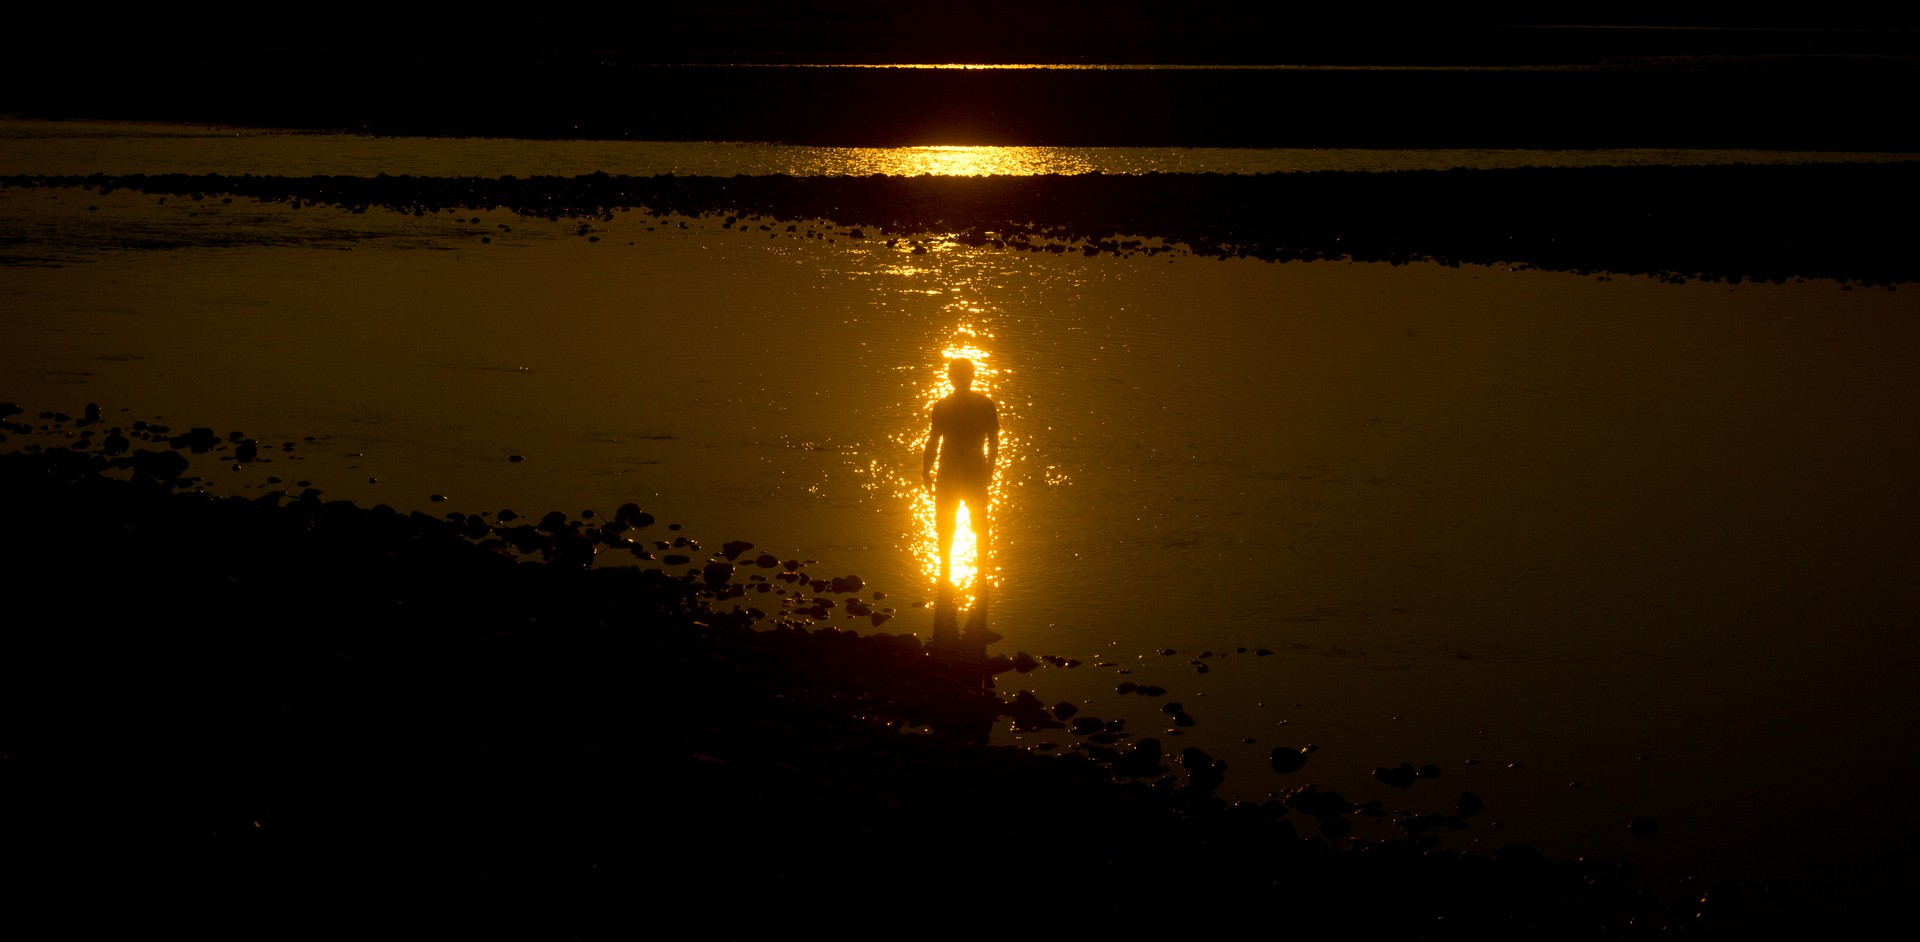 Silhouetted person and gleaming sun reflected on water